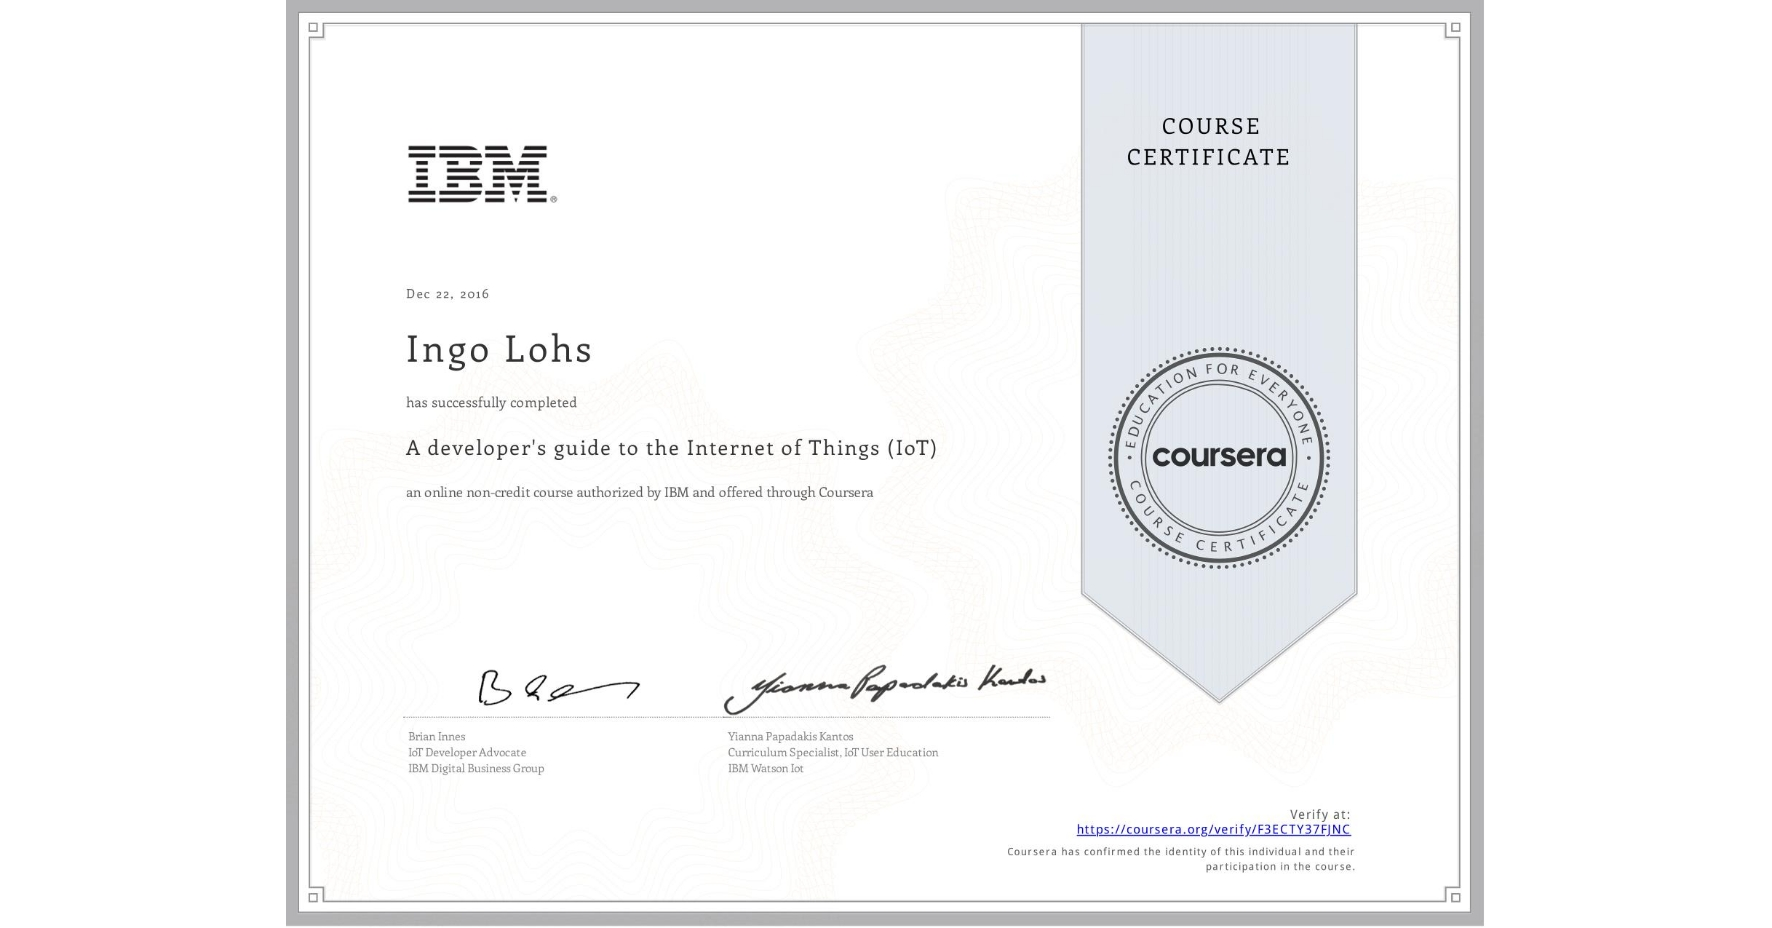 View certificate for Ingo Lohs, A developer's guide to the Internet of Things (IoT), an online non-credit course authorized by IBM and offered through Coursera